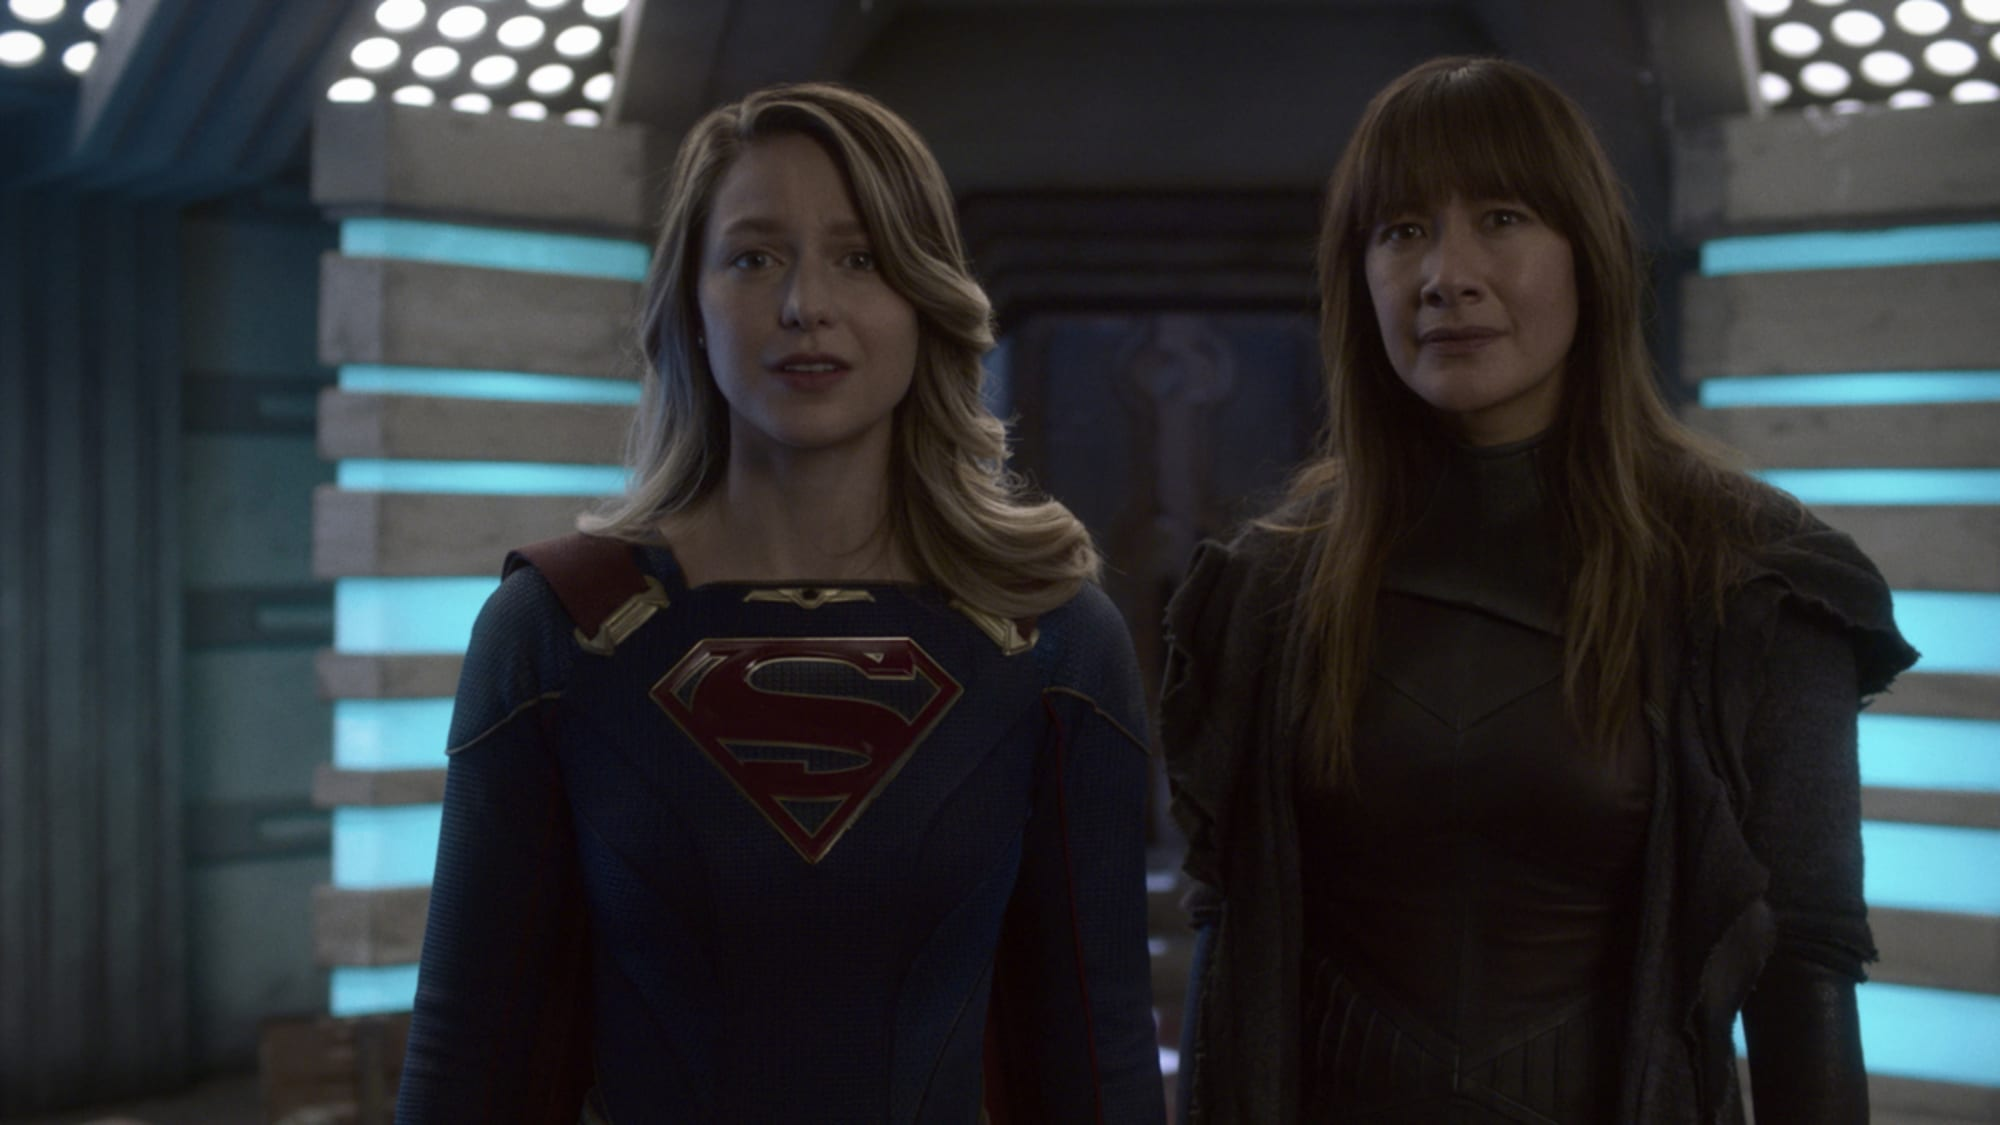 Supergirl Season 6 Episode 6 Release Date and Spoilers